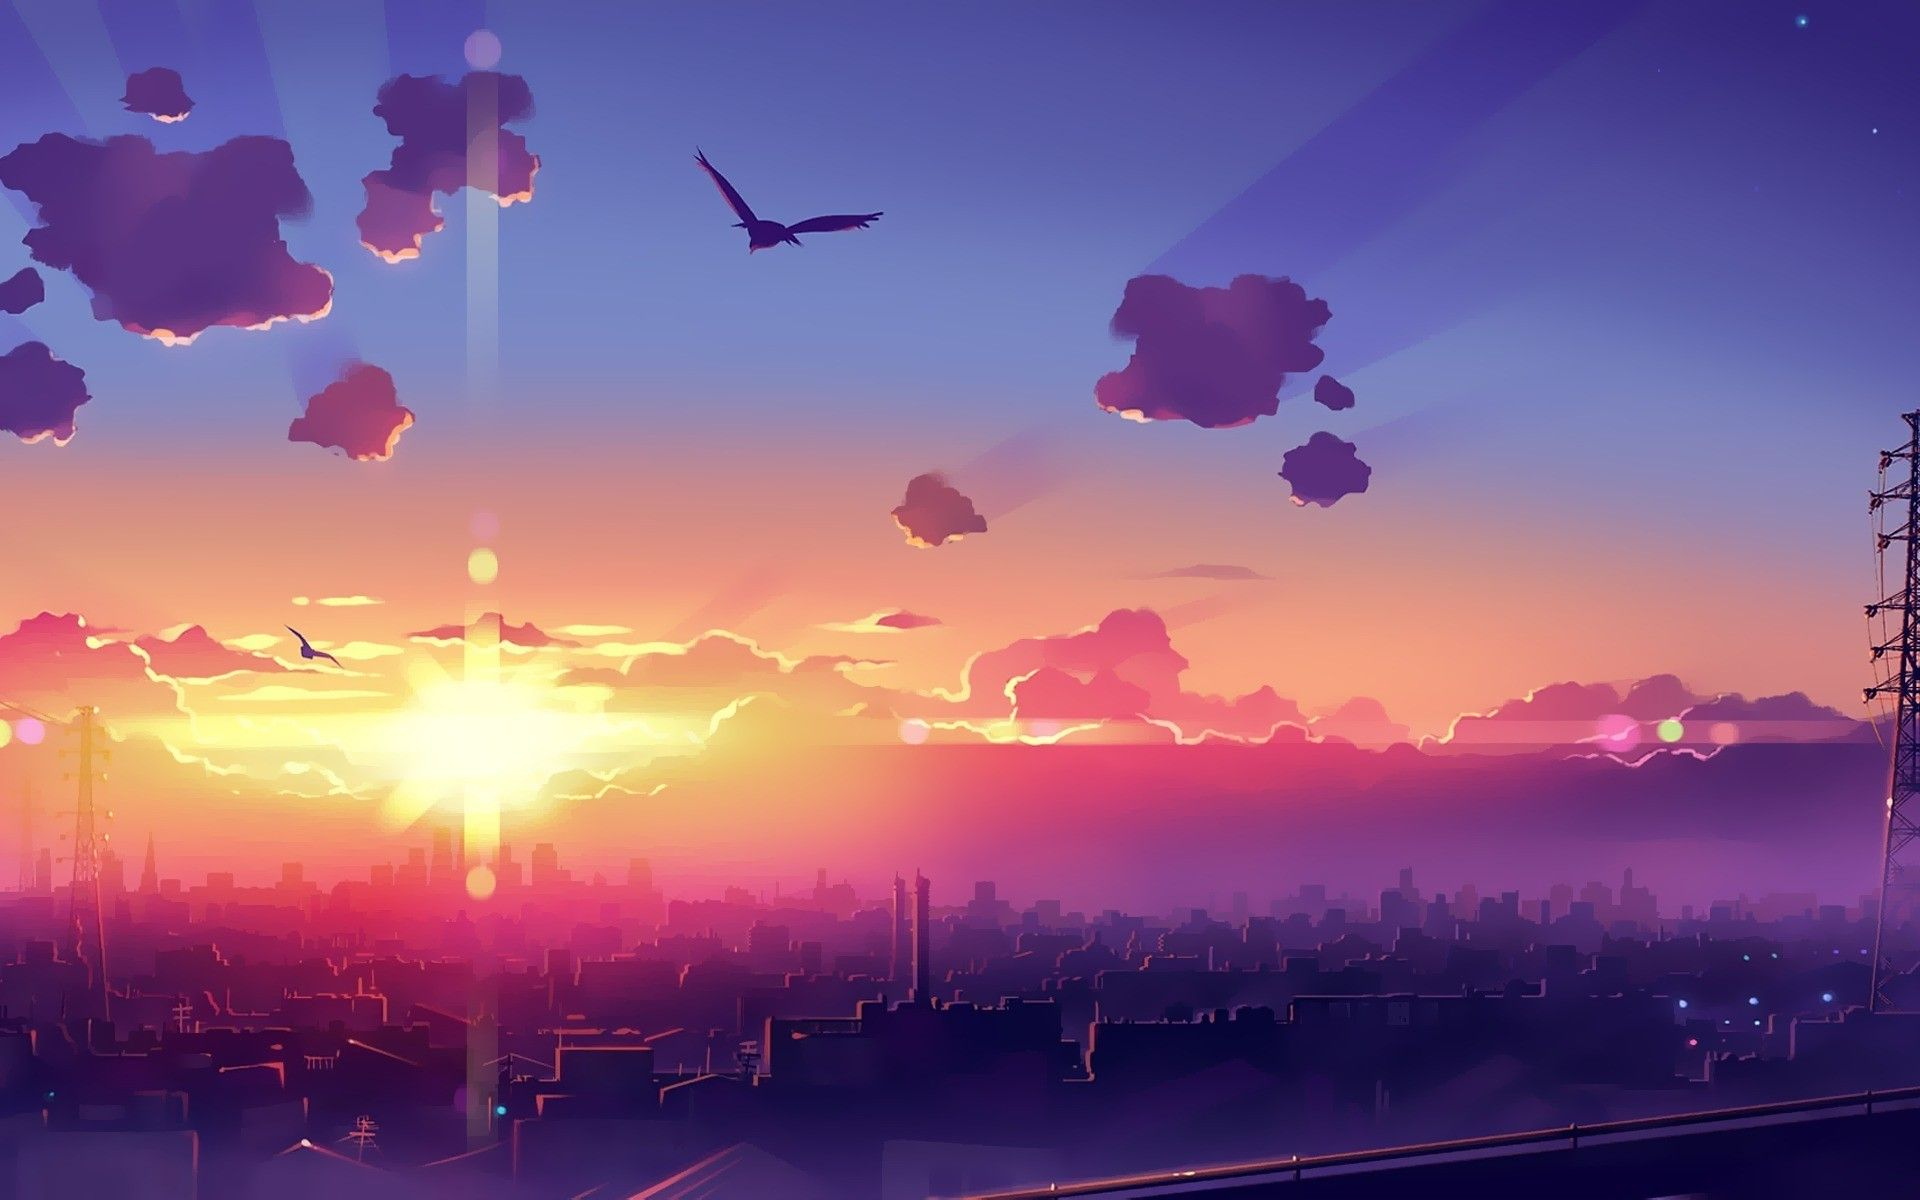 artwork, Fantasy Art, Anime, City, Sunset, Sky Wallpaper